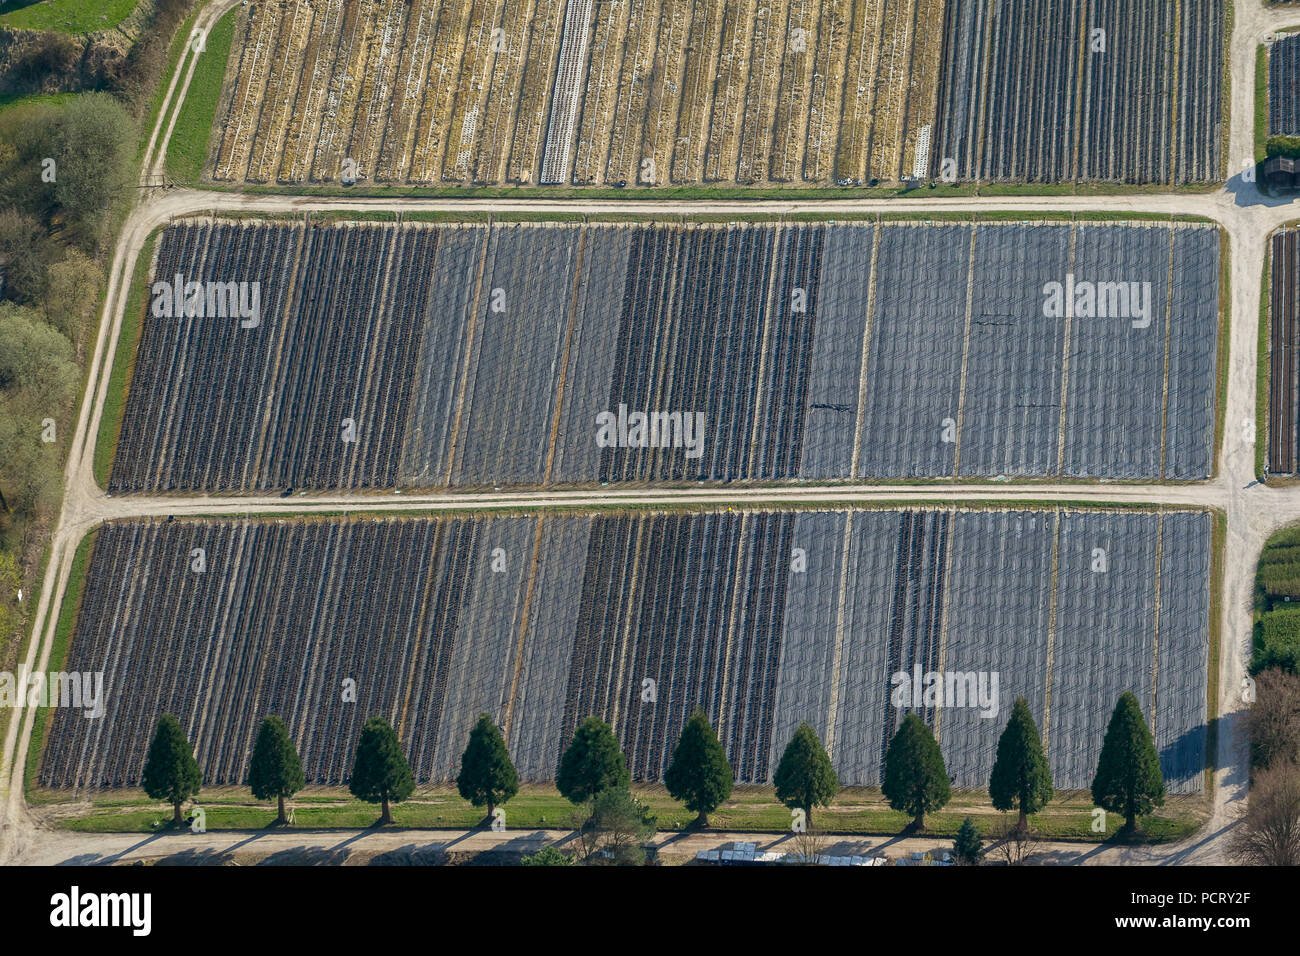 Row of Sequoia family (Sequoioideae) family of cypress plants in front of production rows of fruit trees, nursery garden Kramer, aerial photograph of Detmold Stock Photo